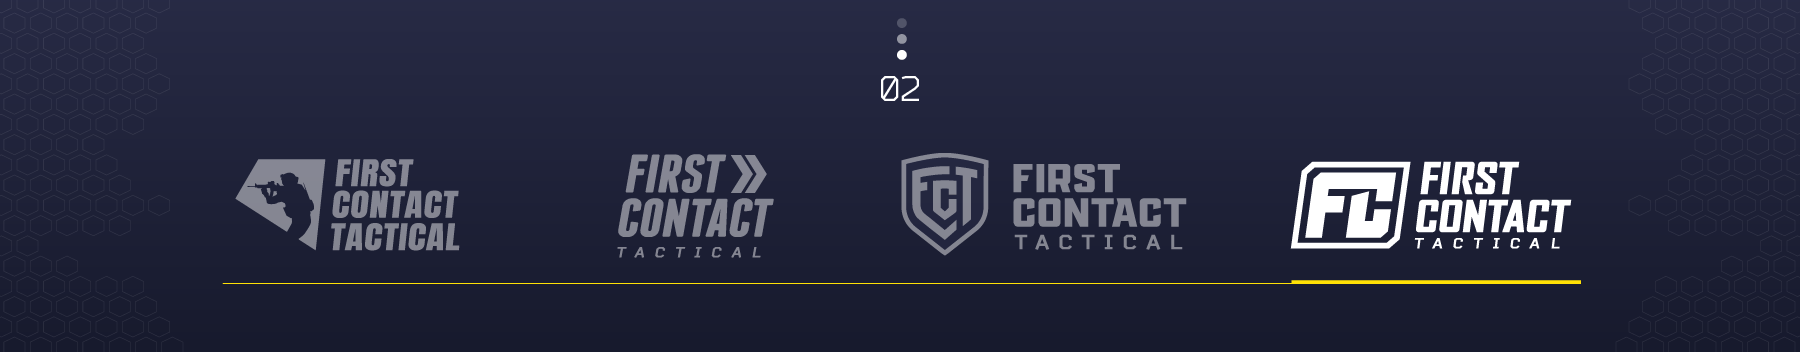 FCT initial logo concepts